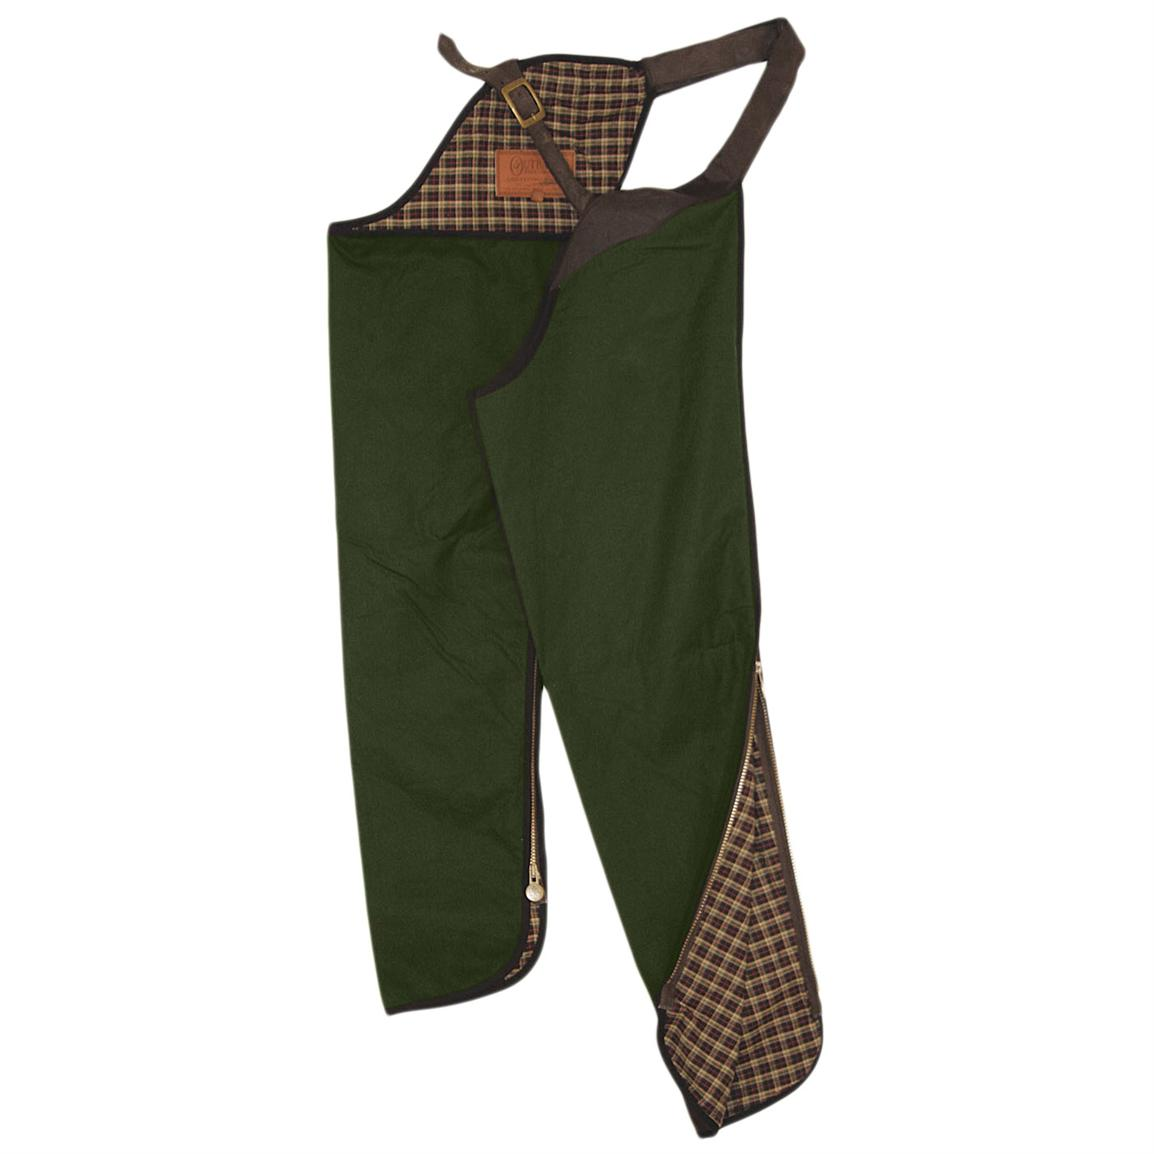 Outback Trading® Lined Oilskin Chaps, English Green